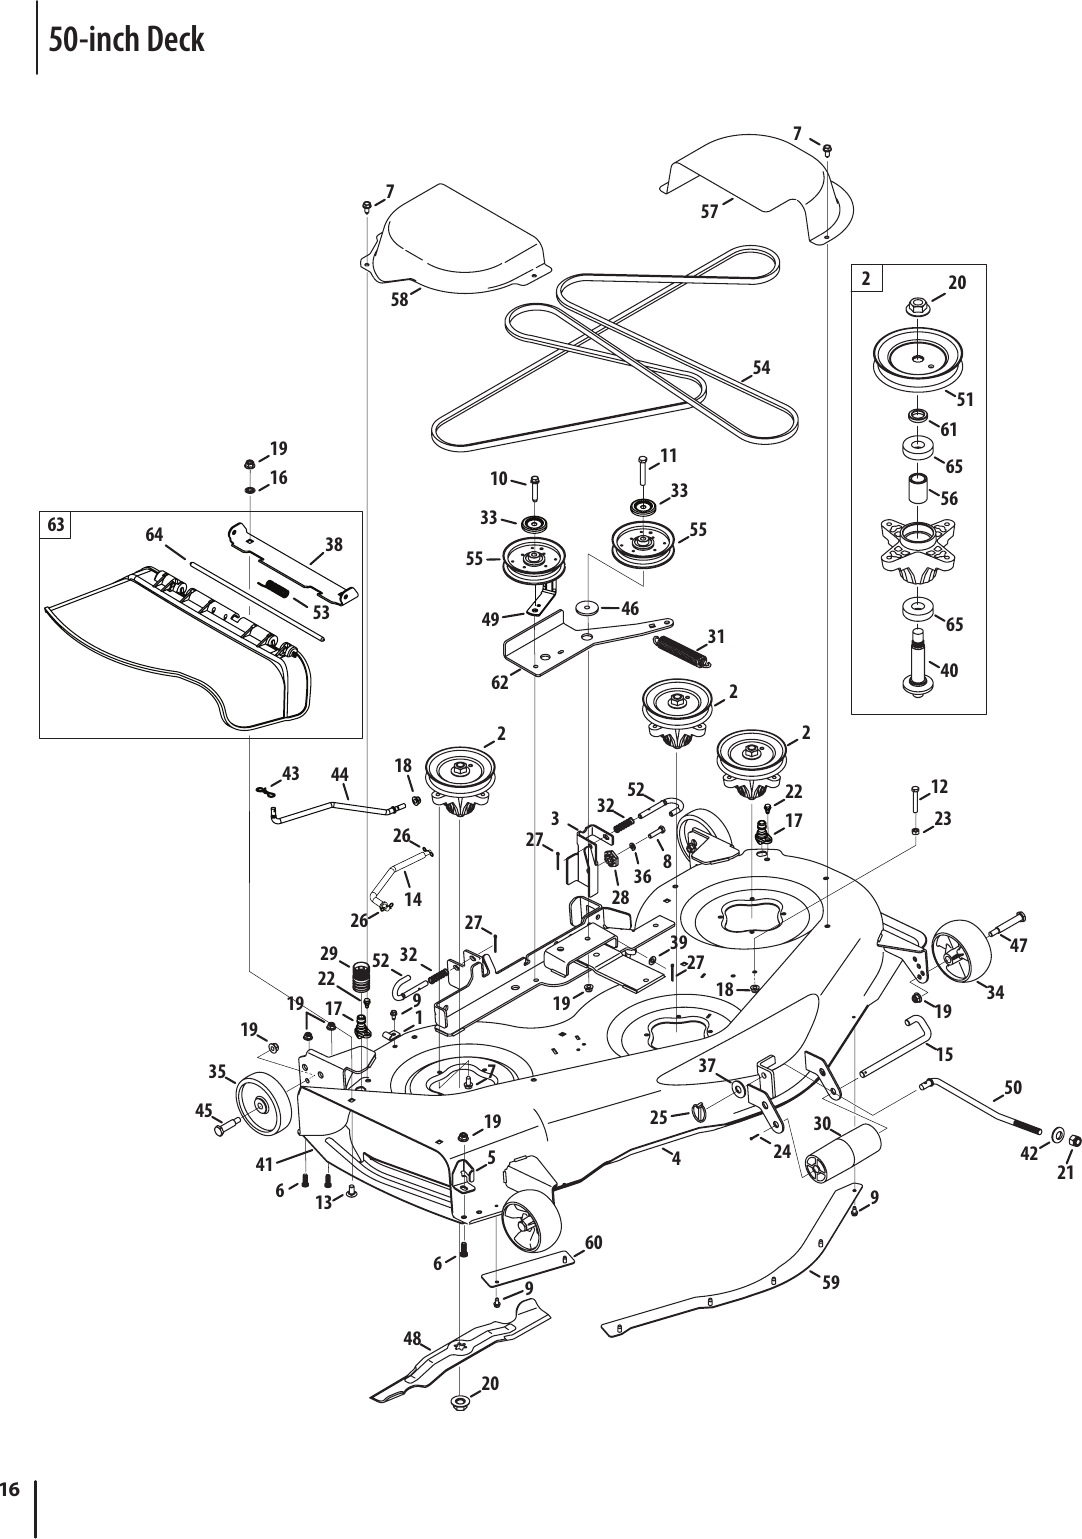 Cub Cadet Ltx 1050 Deck Diagram